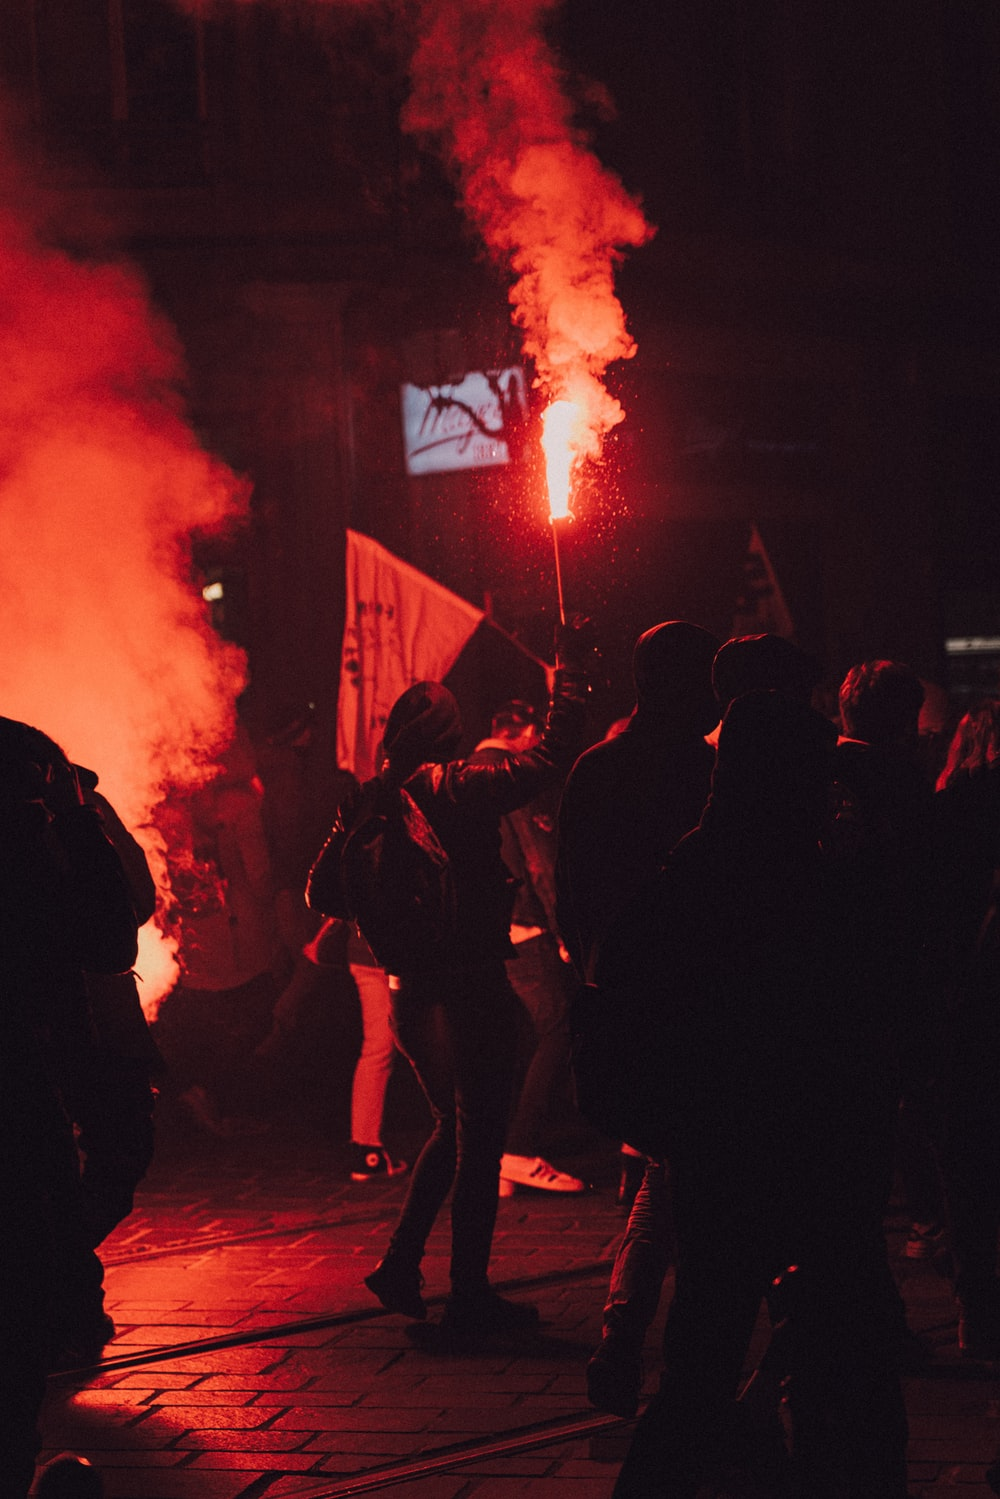 people standing on the street with red smoke